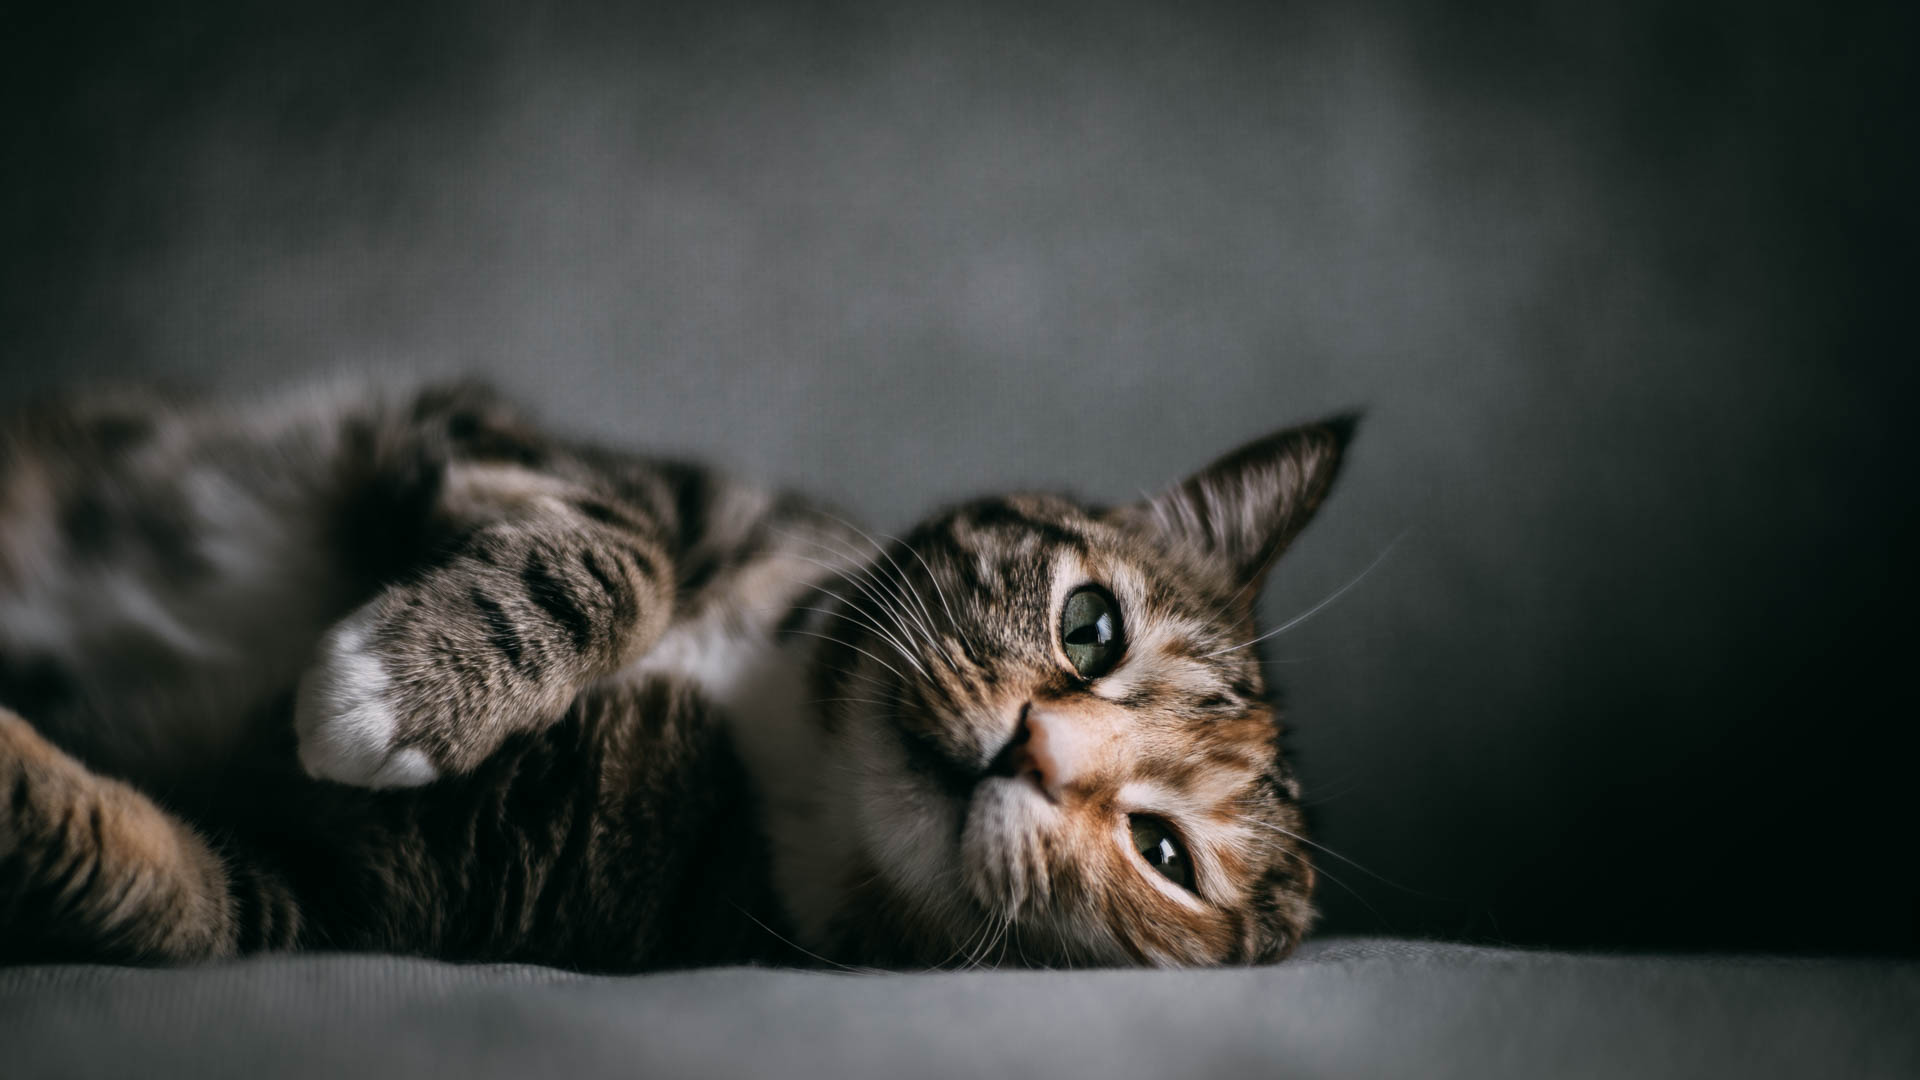 Cat Photography|Contax Carl Zeiss Planar 85mm f/1.4